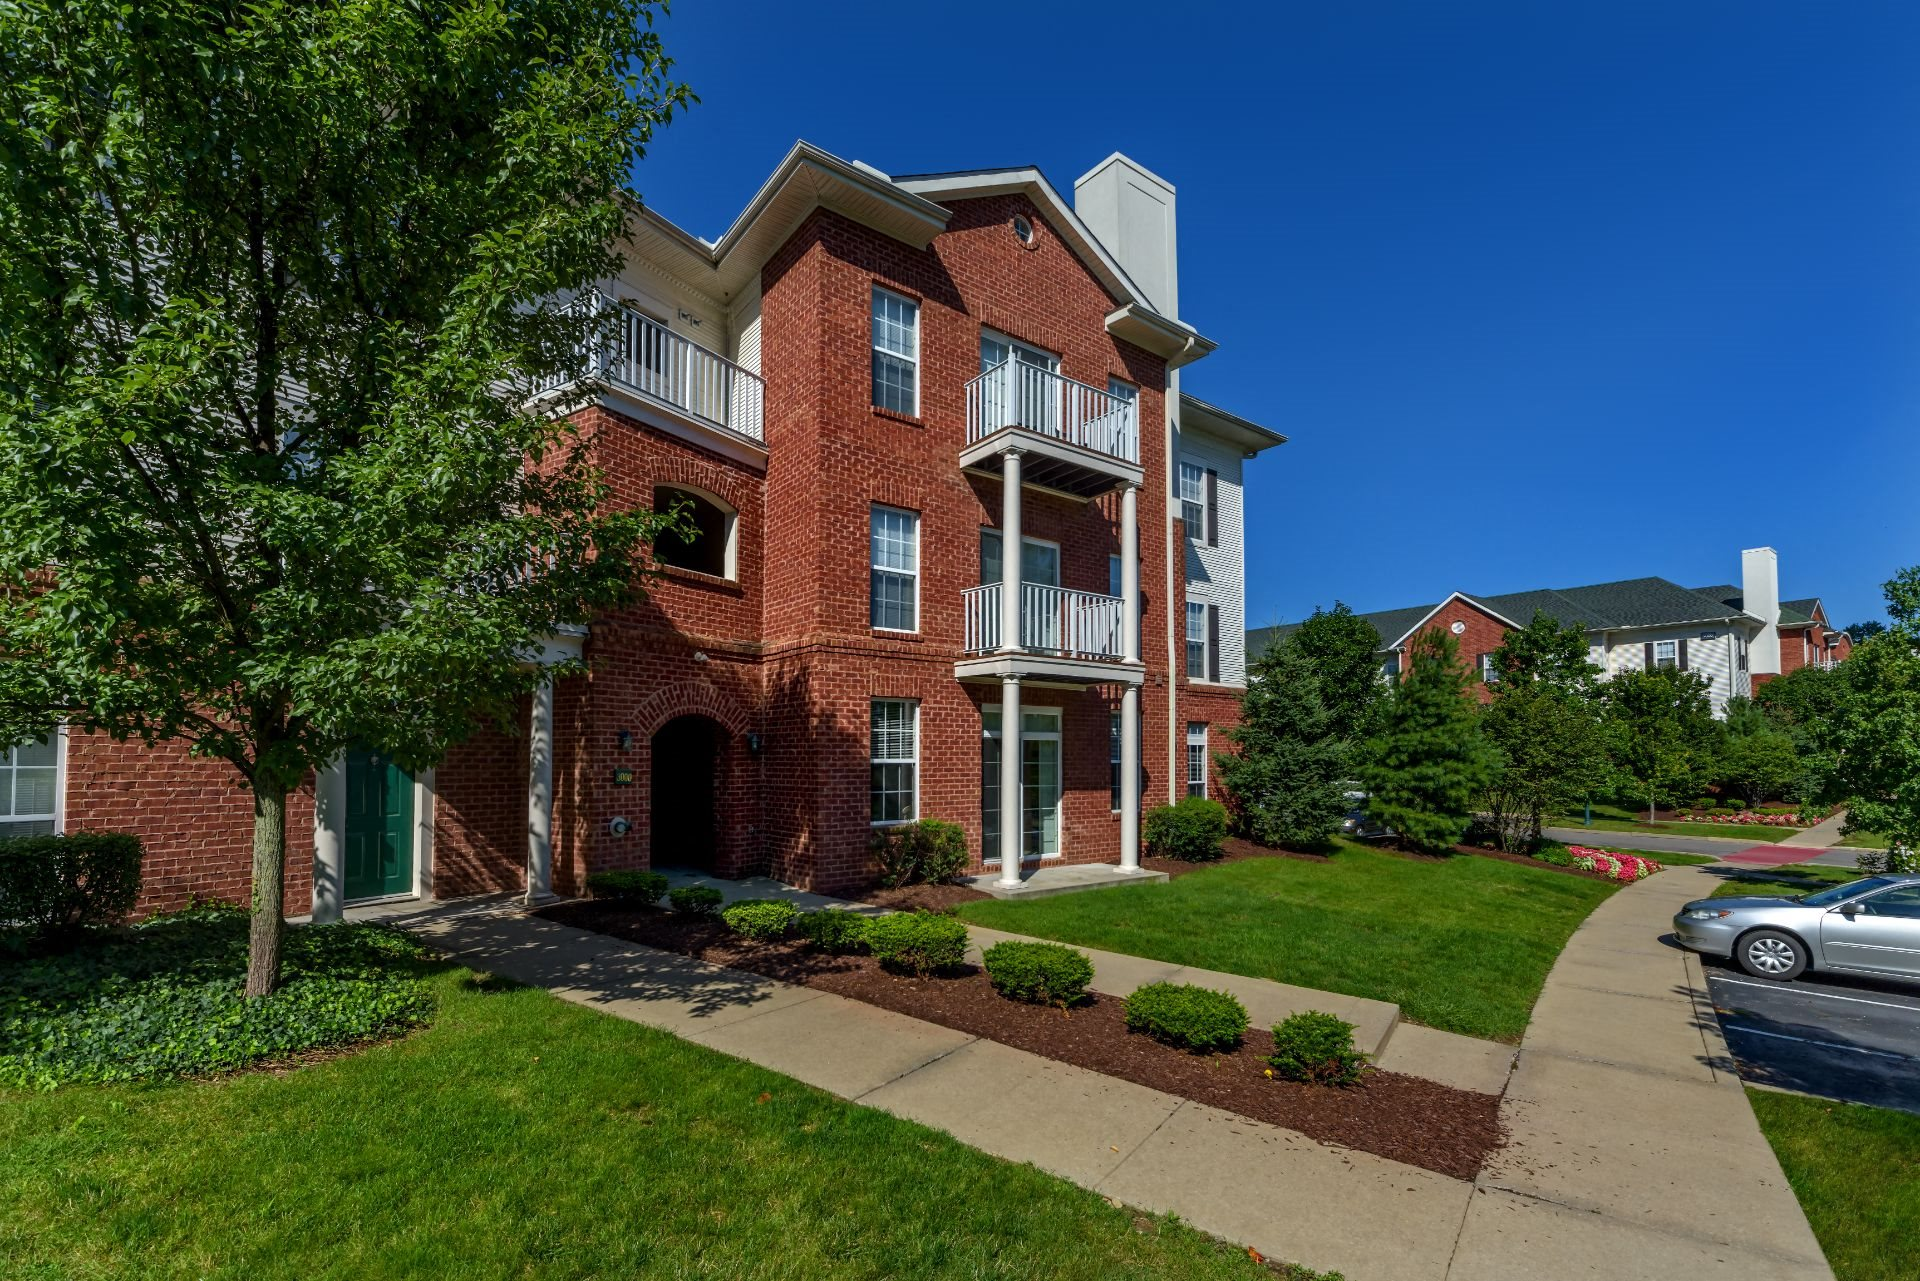 1, 2 and 3 Bedroom Apartments Near Downtown Pittsburgh, Christopher Wren Apartments